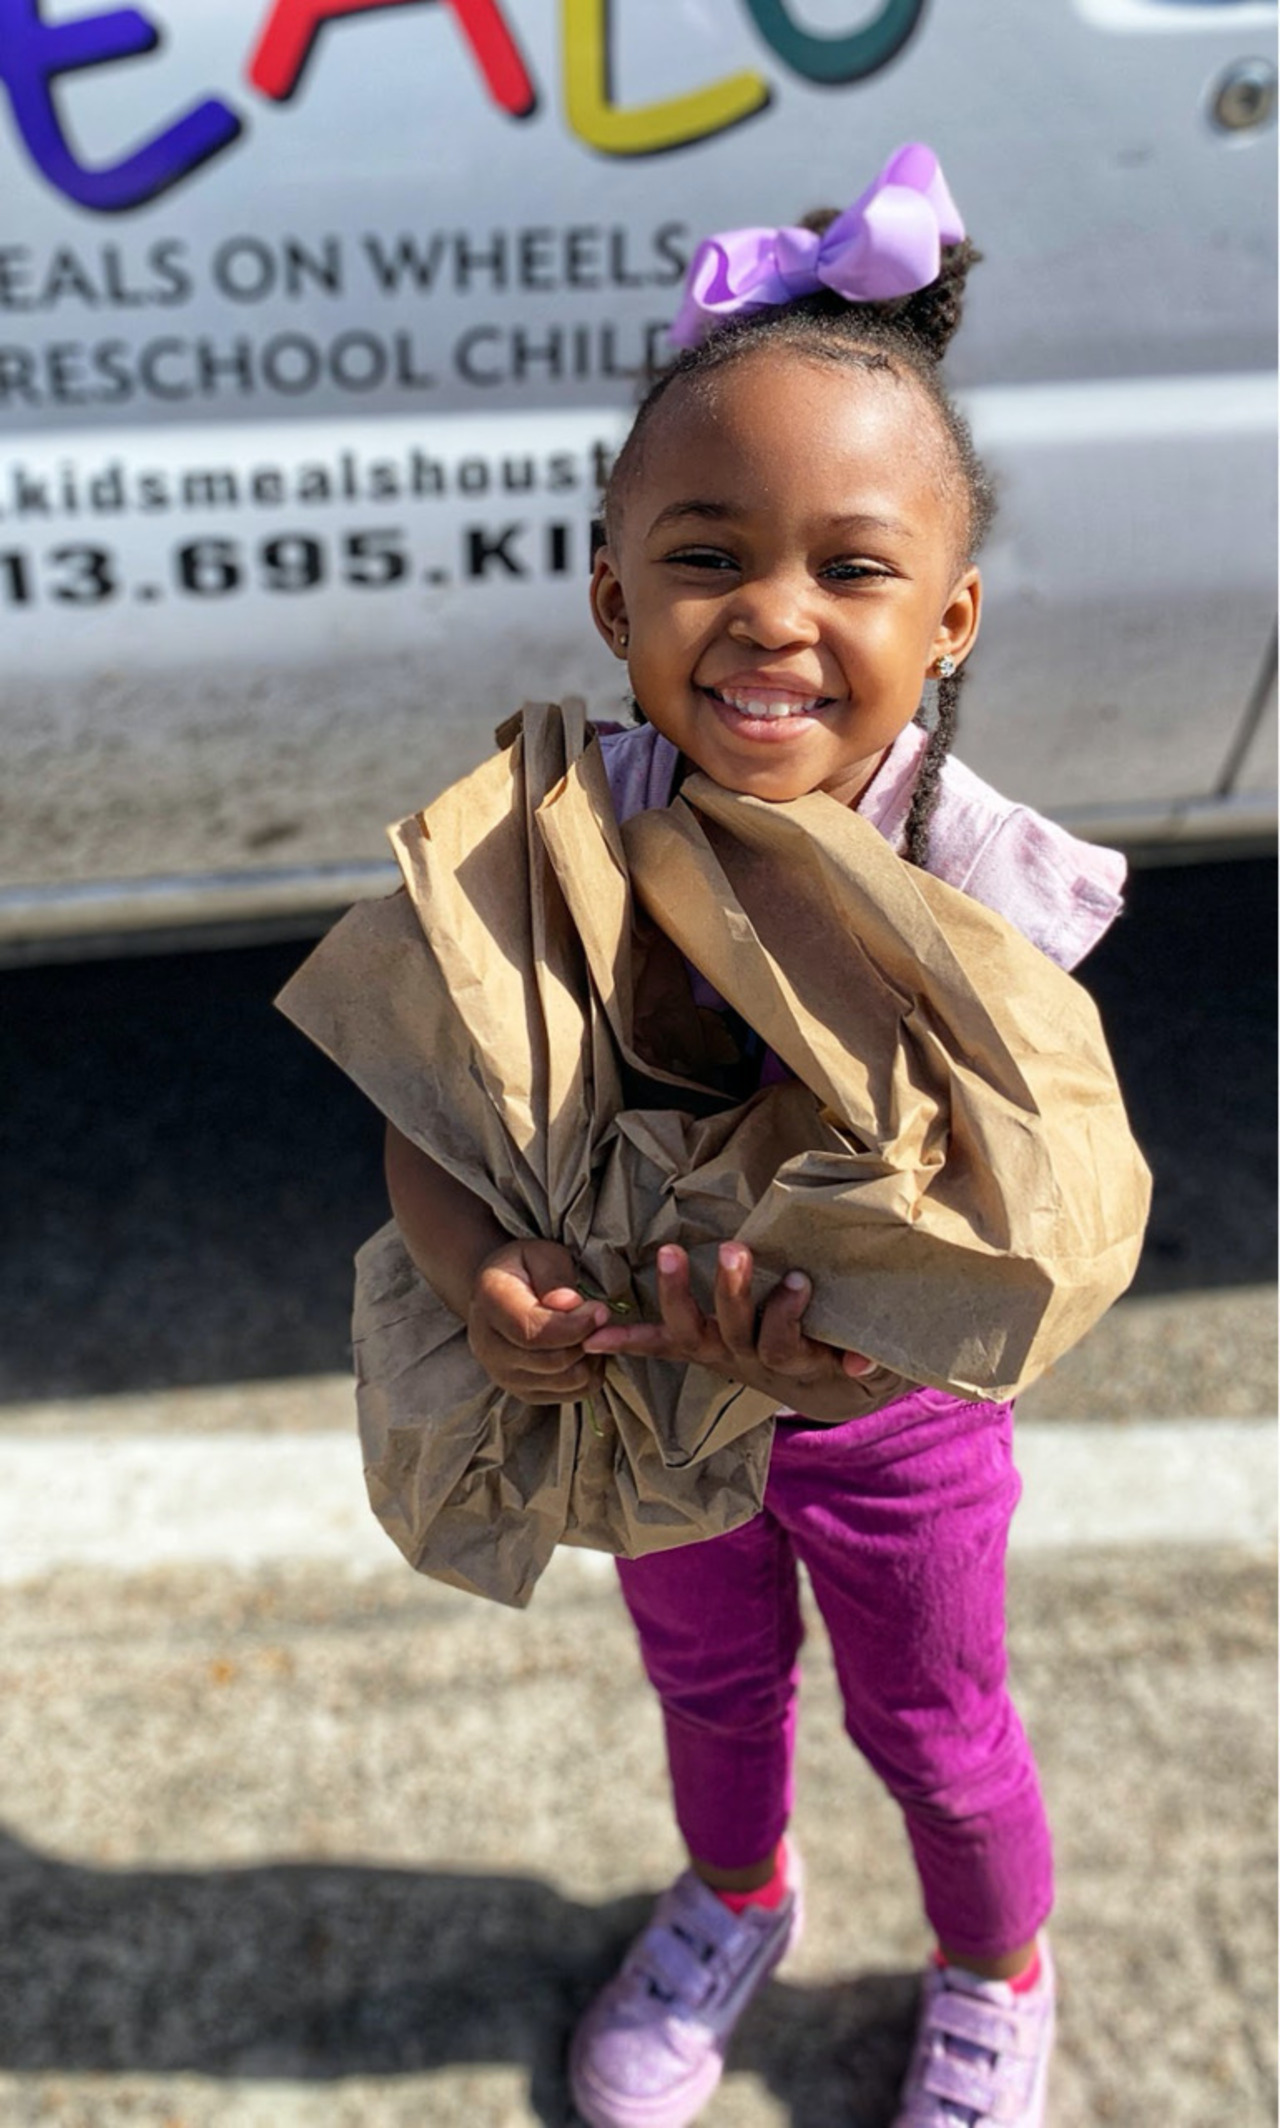 Annie and friends Gives Back to Kids' Meals